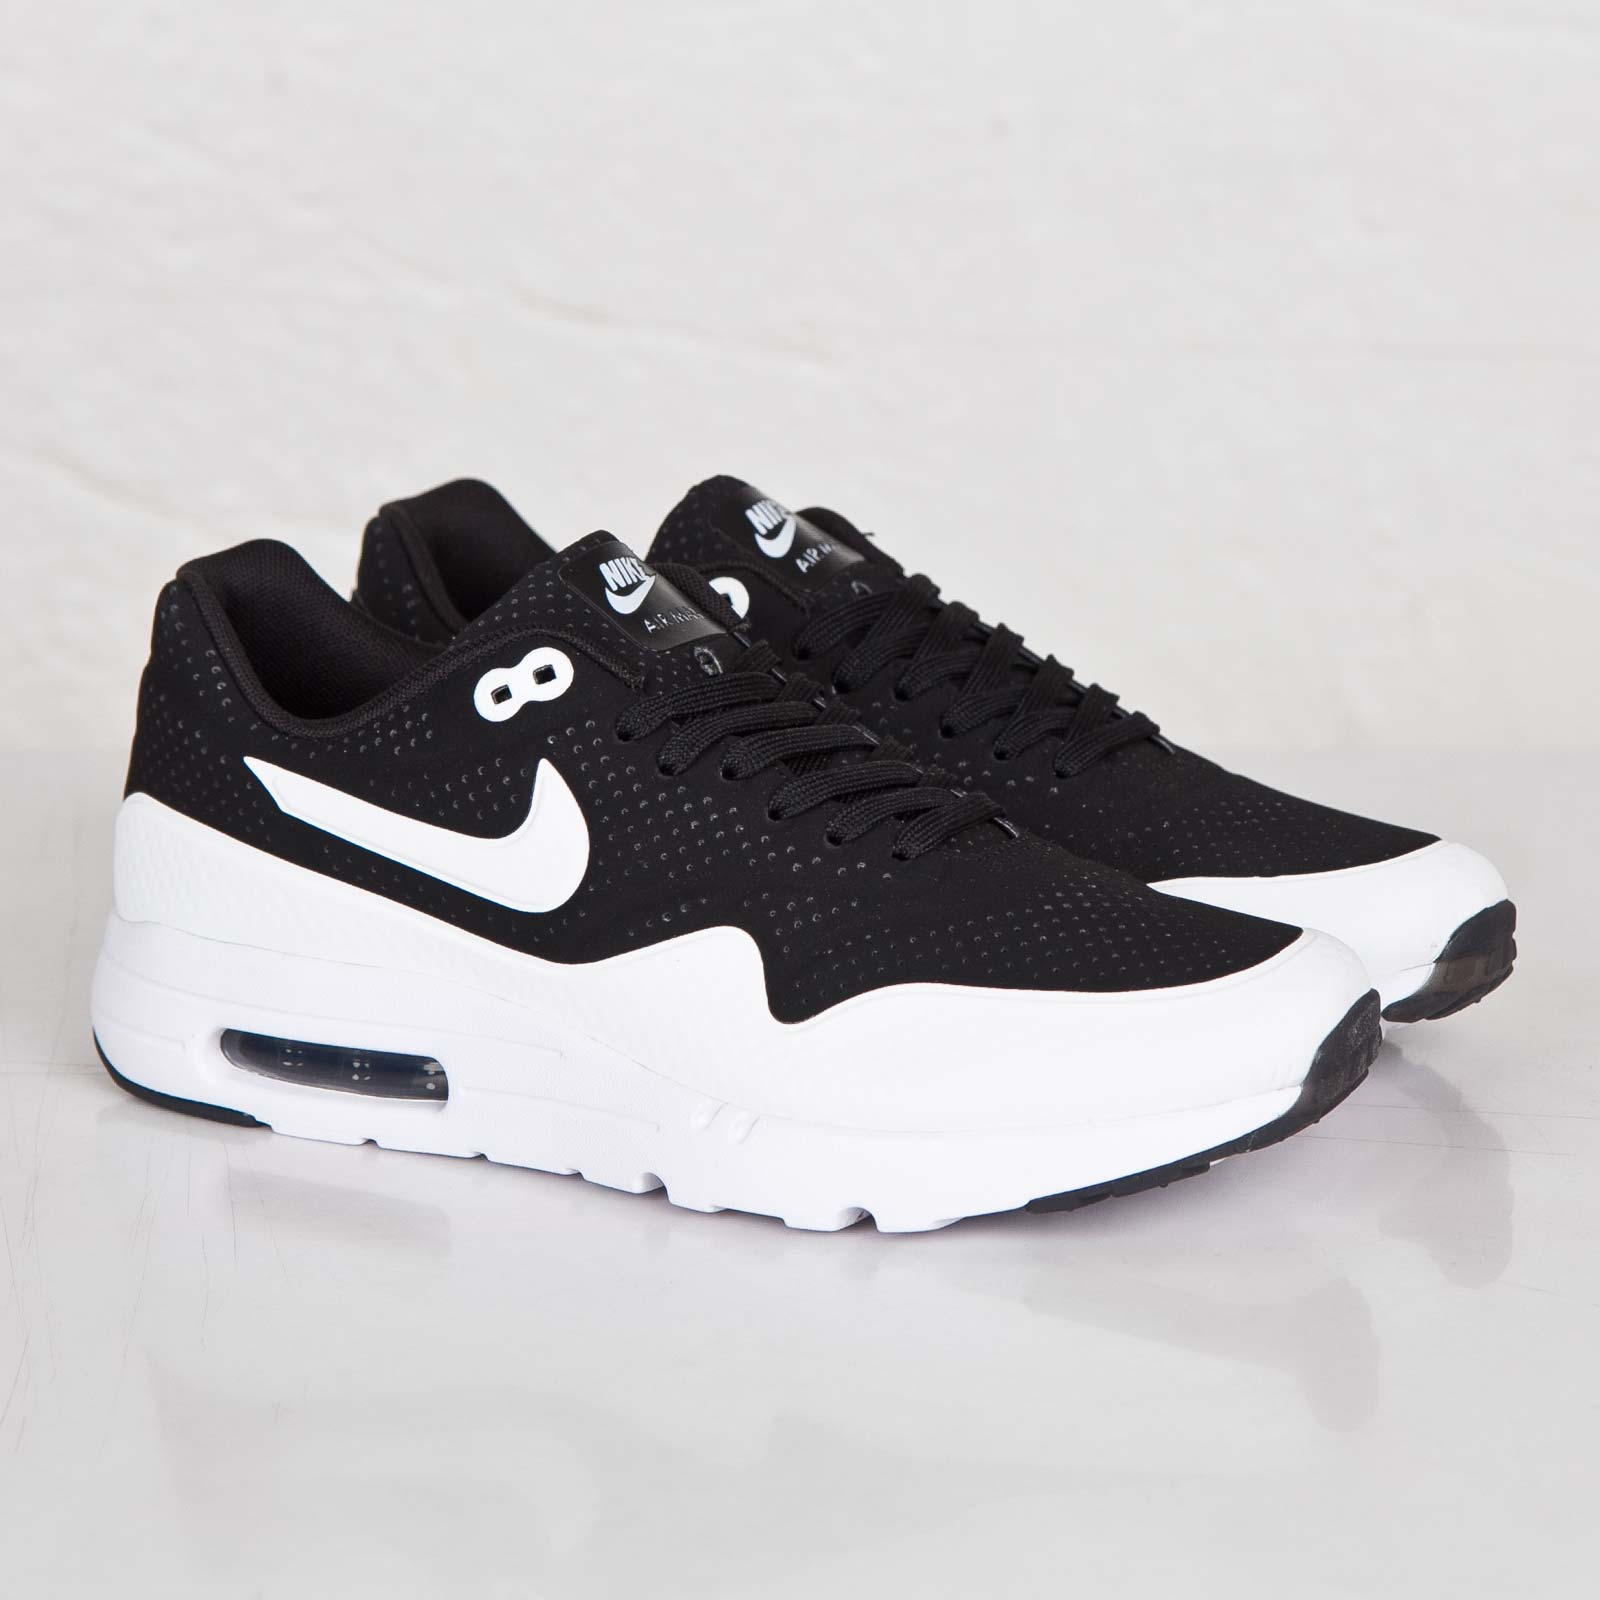 new product 9ebe0 f5a1f Nike Air Max 1 Ultra Moire